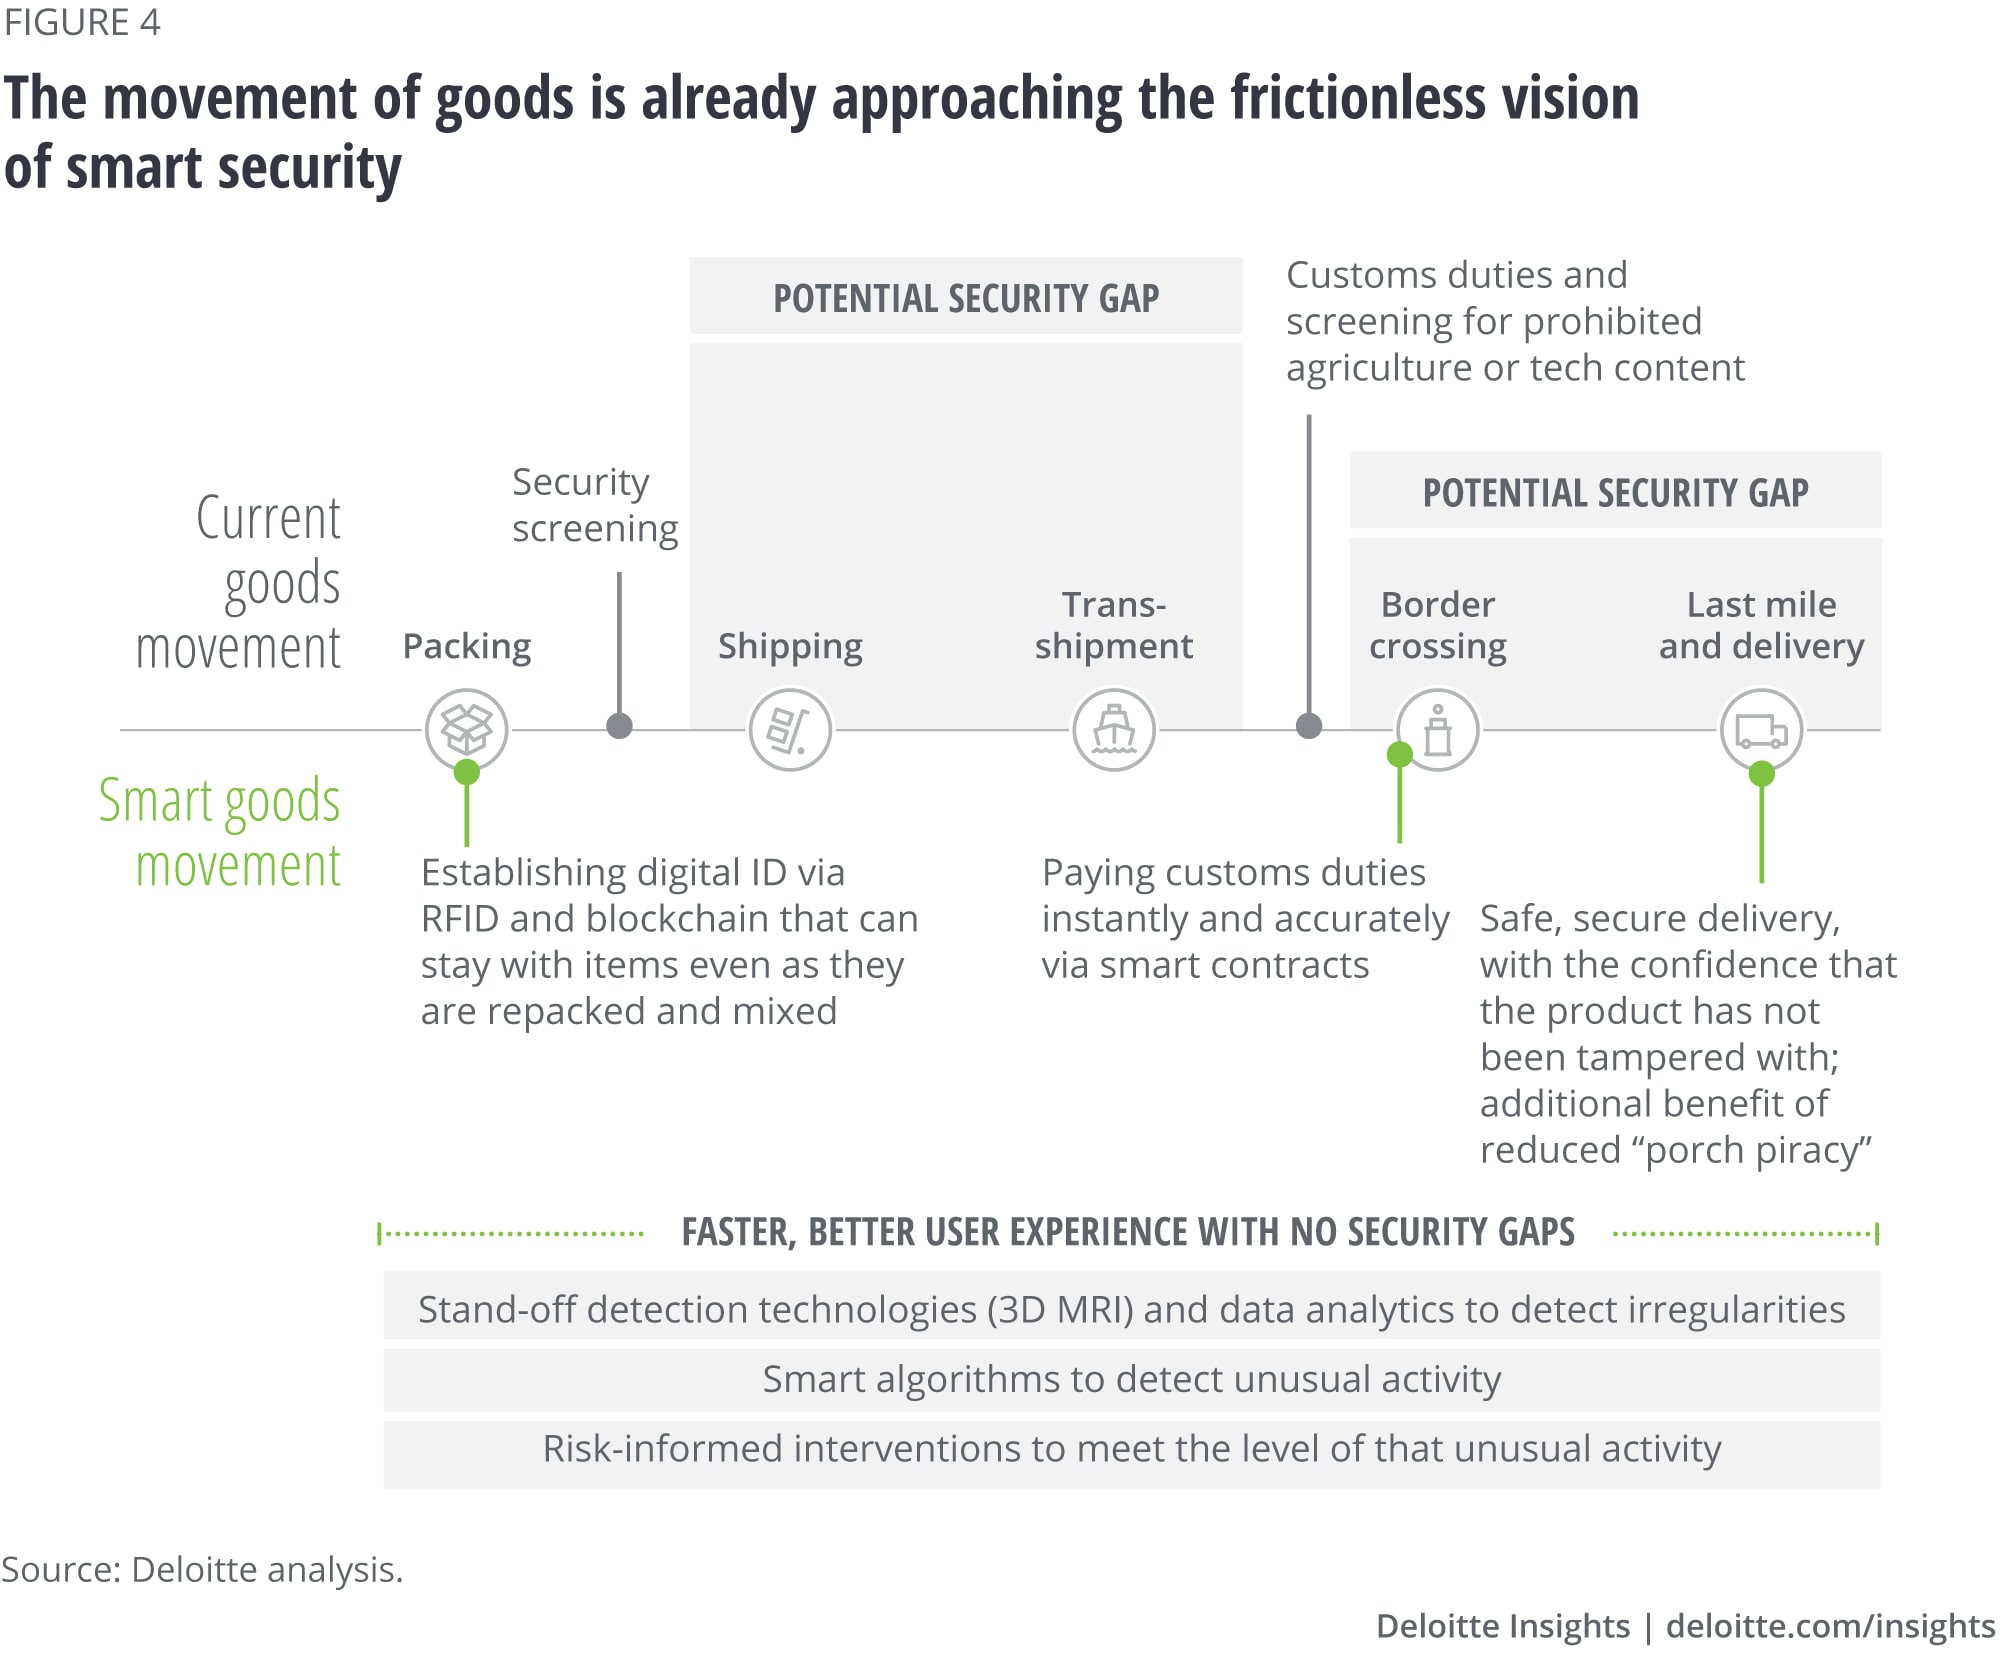 The movement of goods is already approaching the frictionless vision of smart security